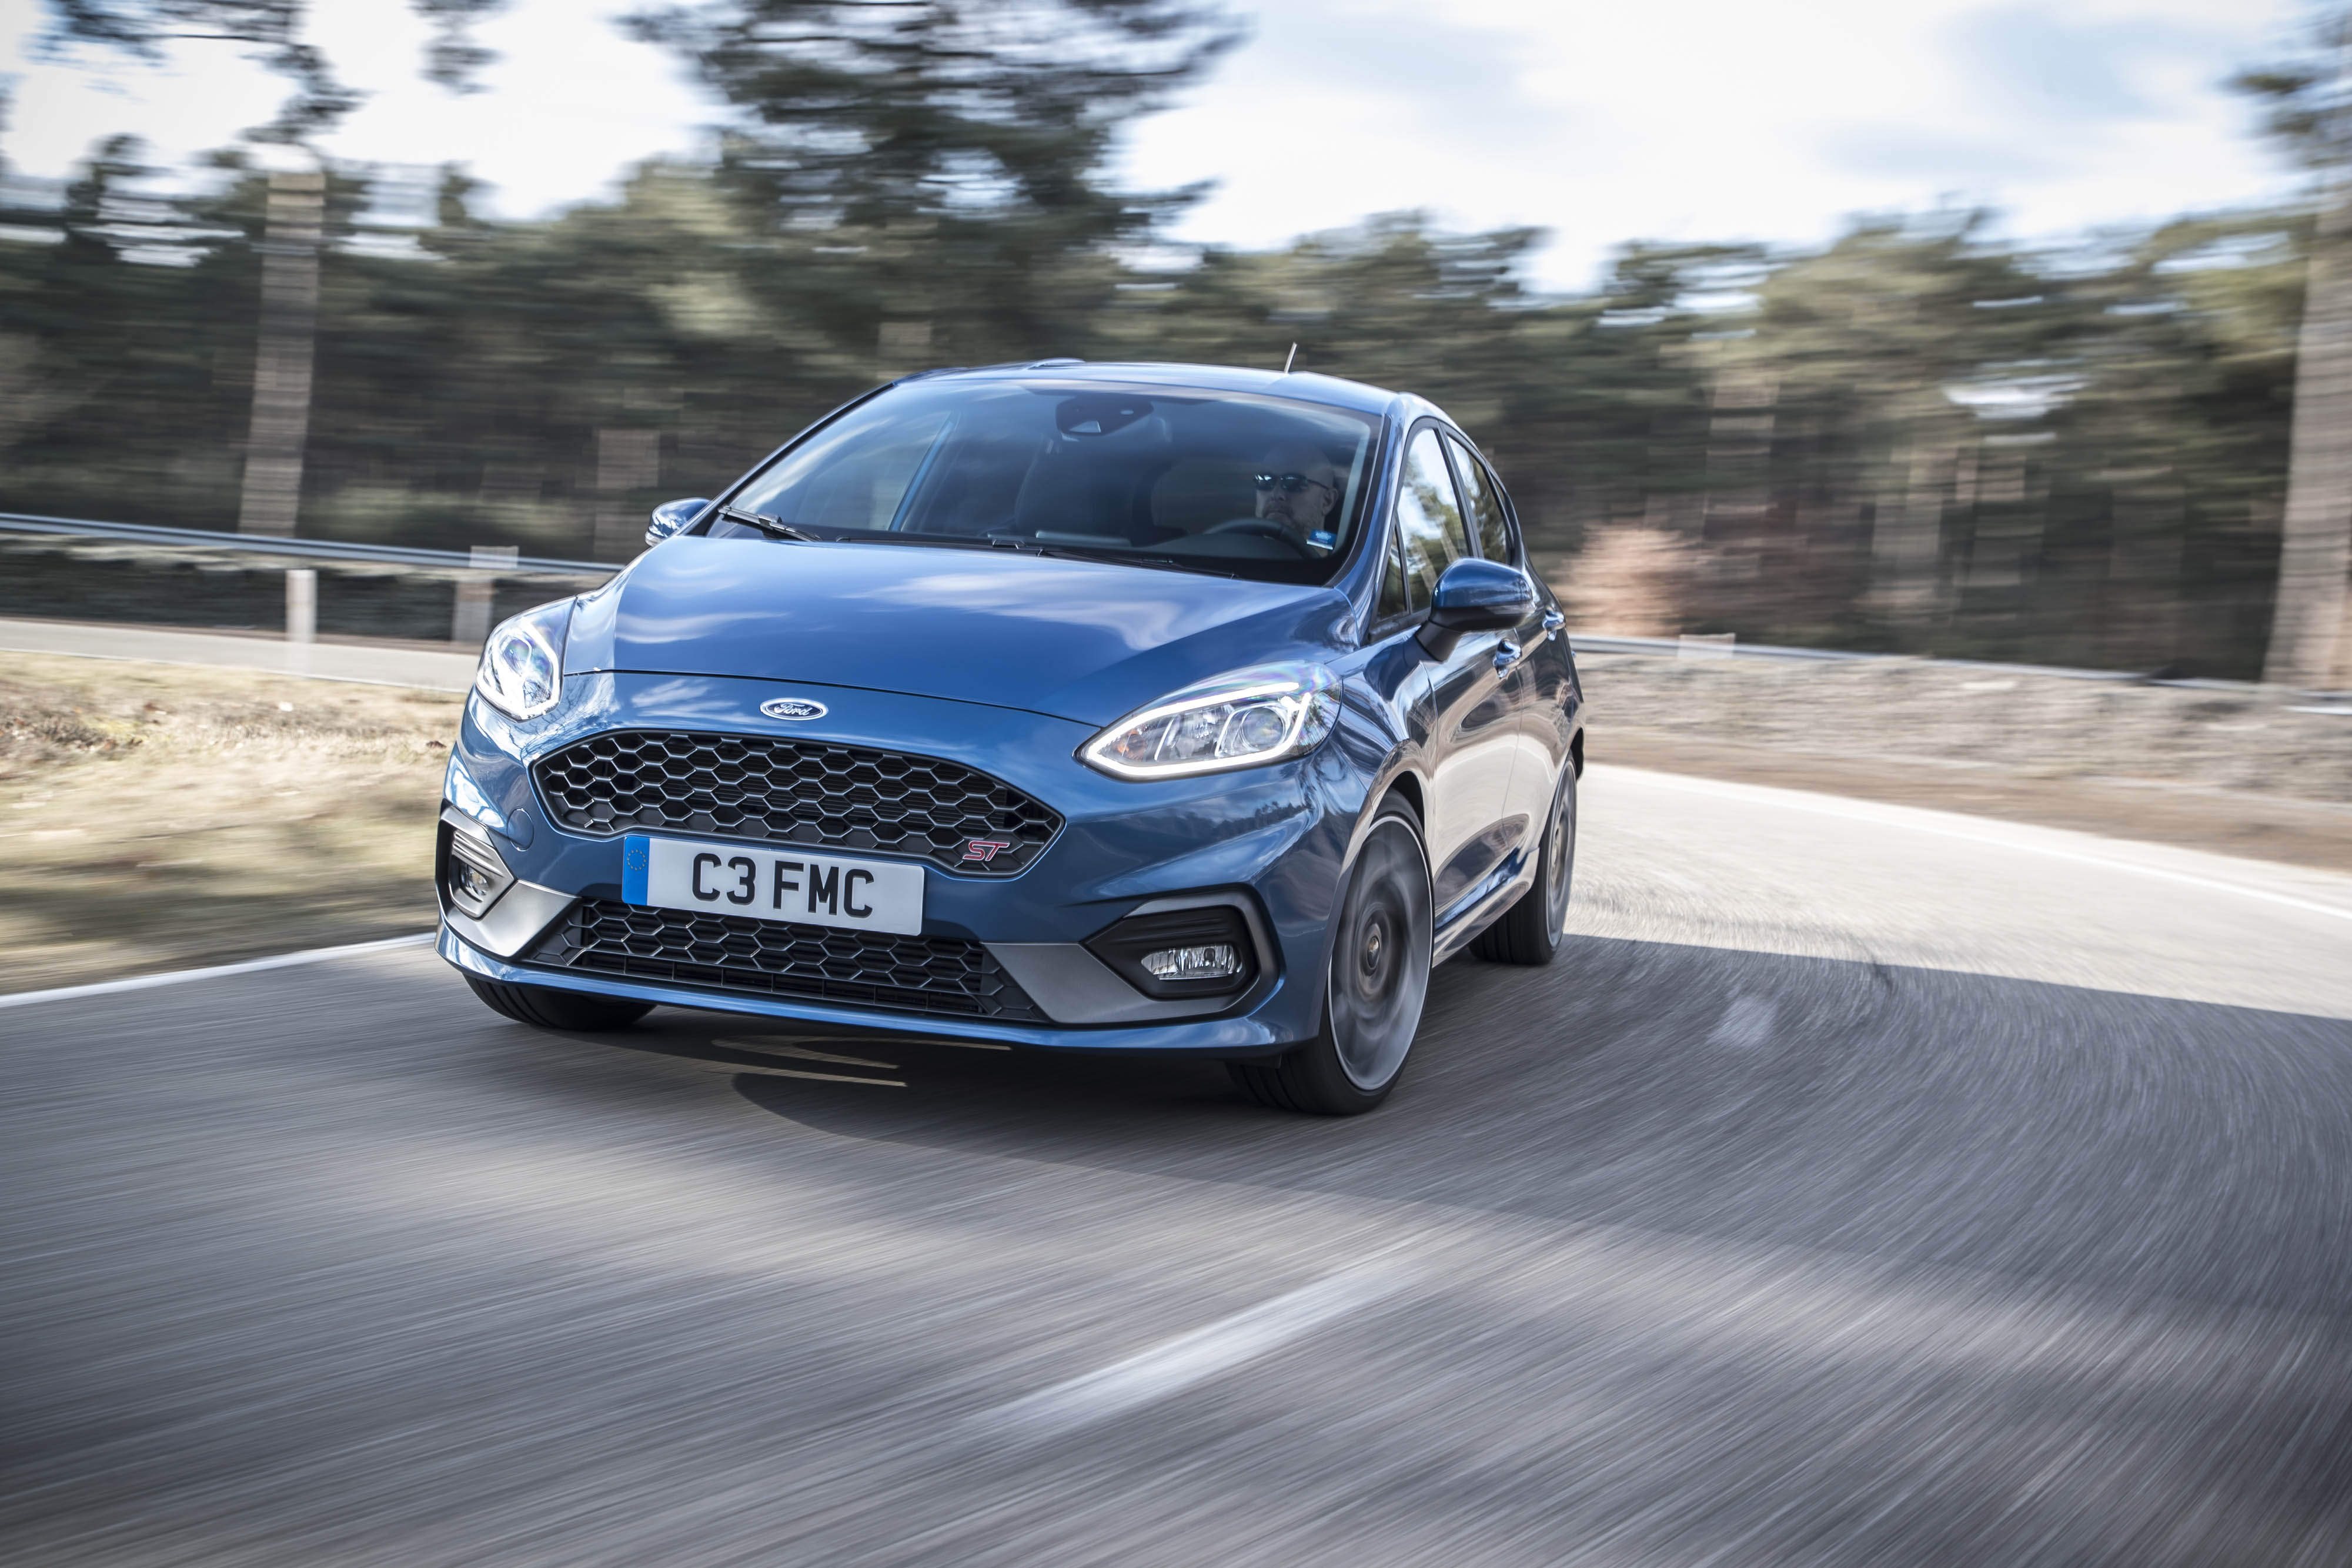 """2020 Ford Fiesta RS Probably Confirmed By """"Broad Grin ..."""